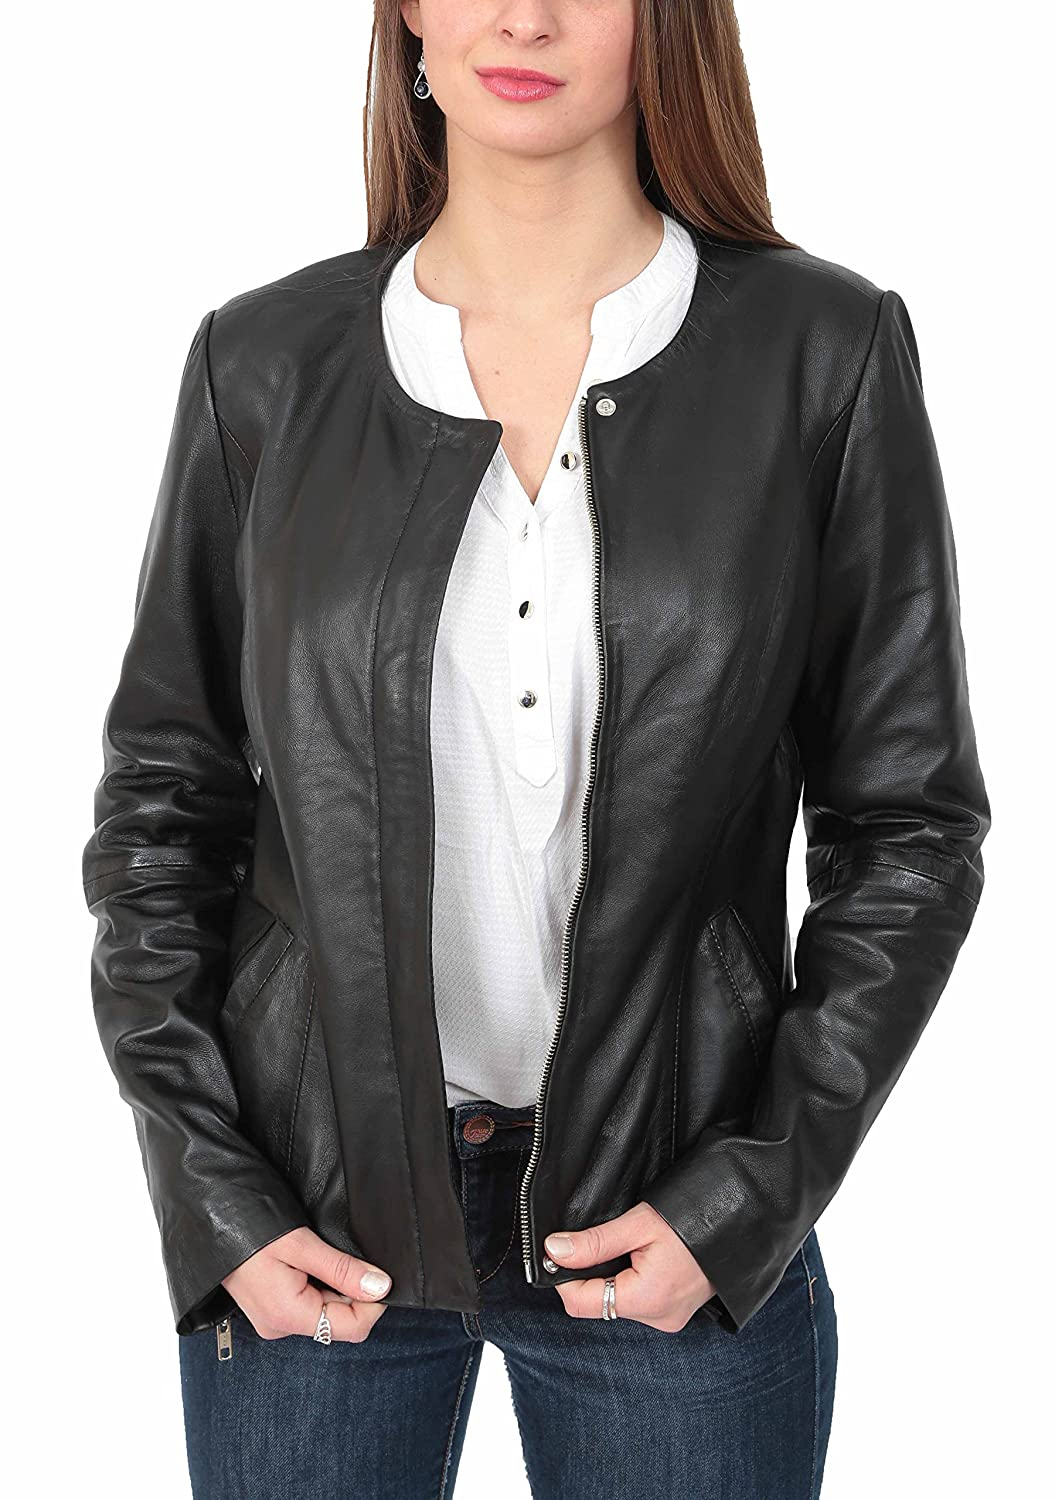 3e145cf5b Real Leather Collarless Jacket for Women Tailored Cut Slim Fit Ladies Coat  Moreno Black